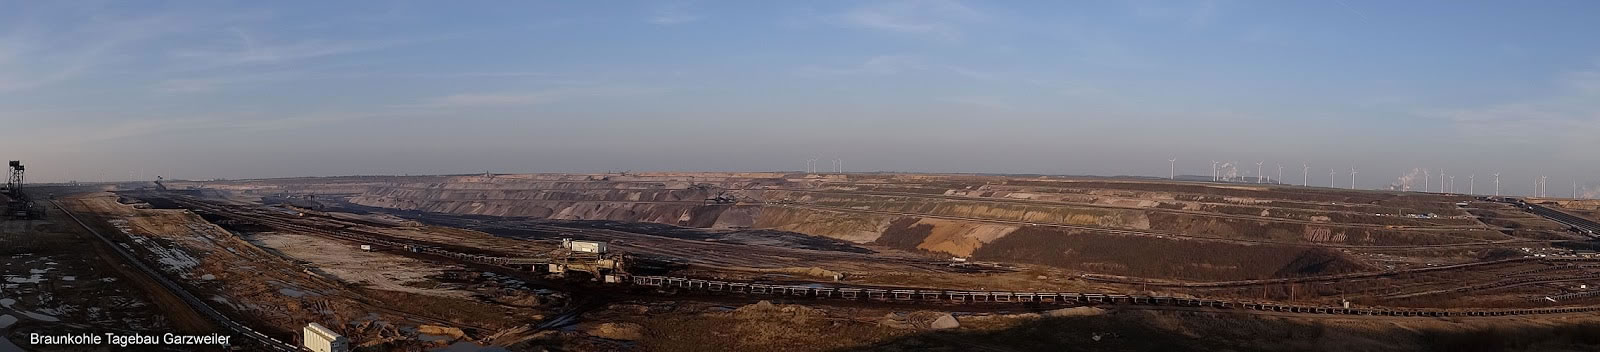 Opencast Mine Germany